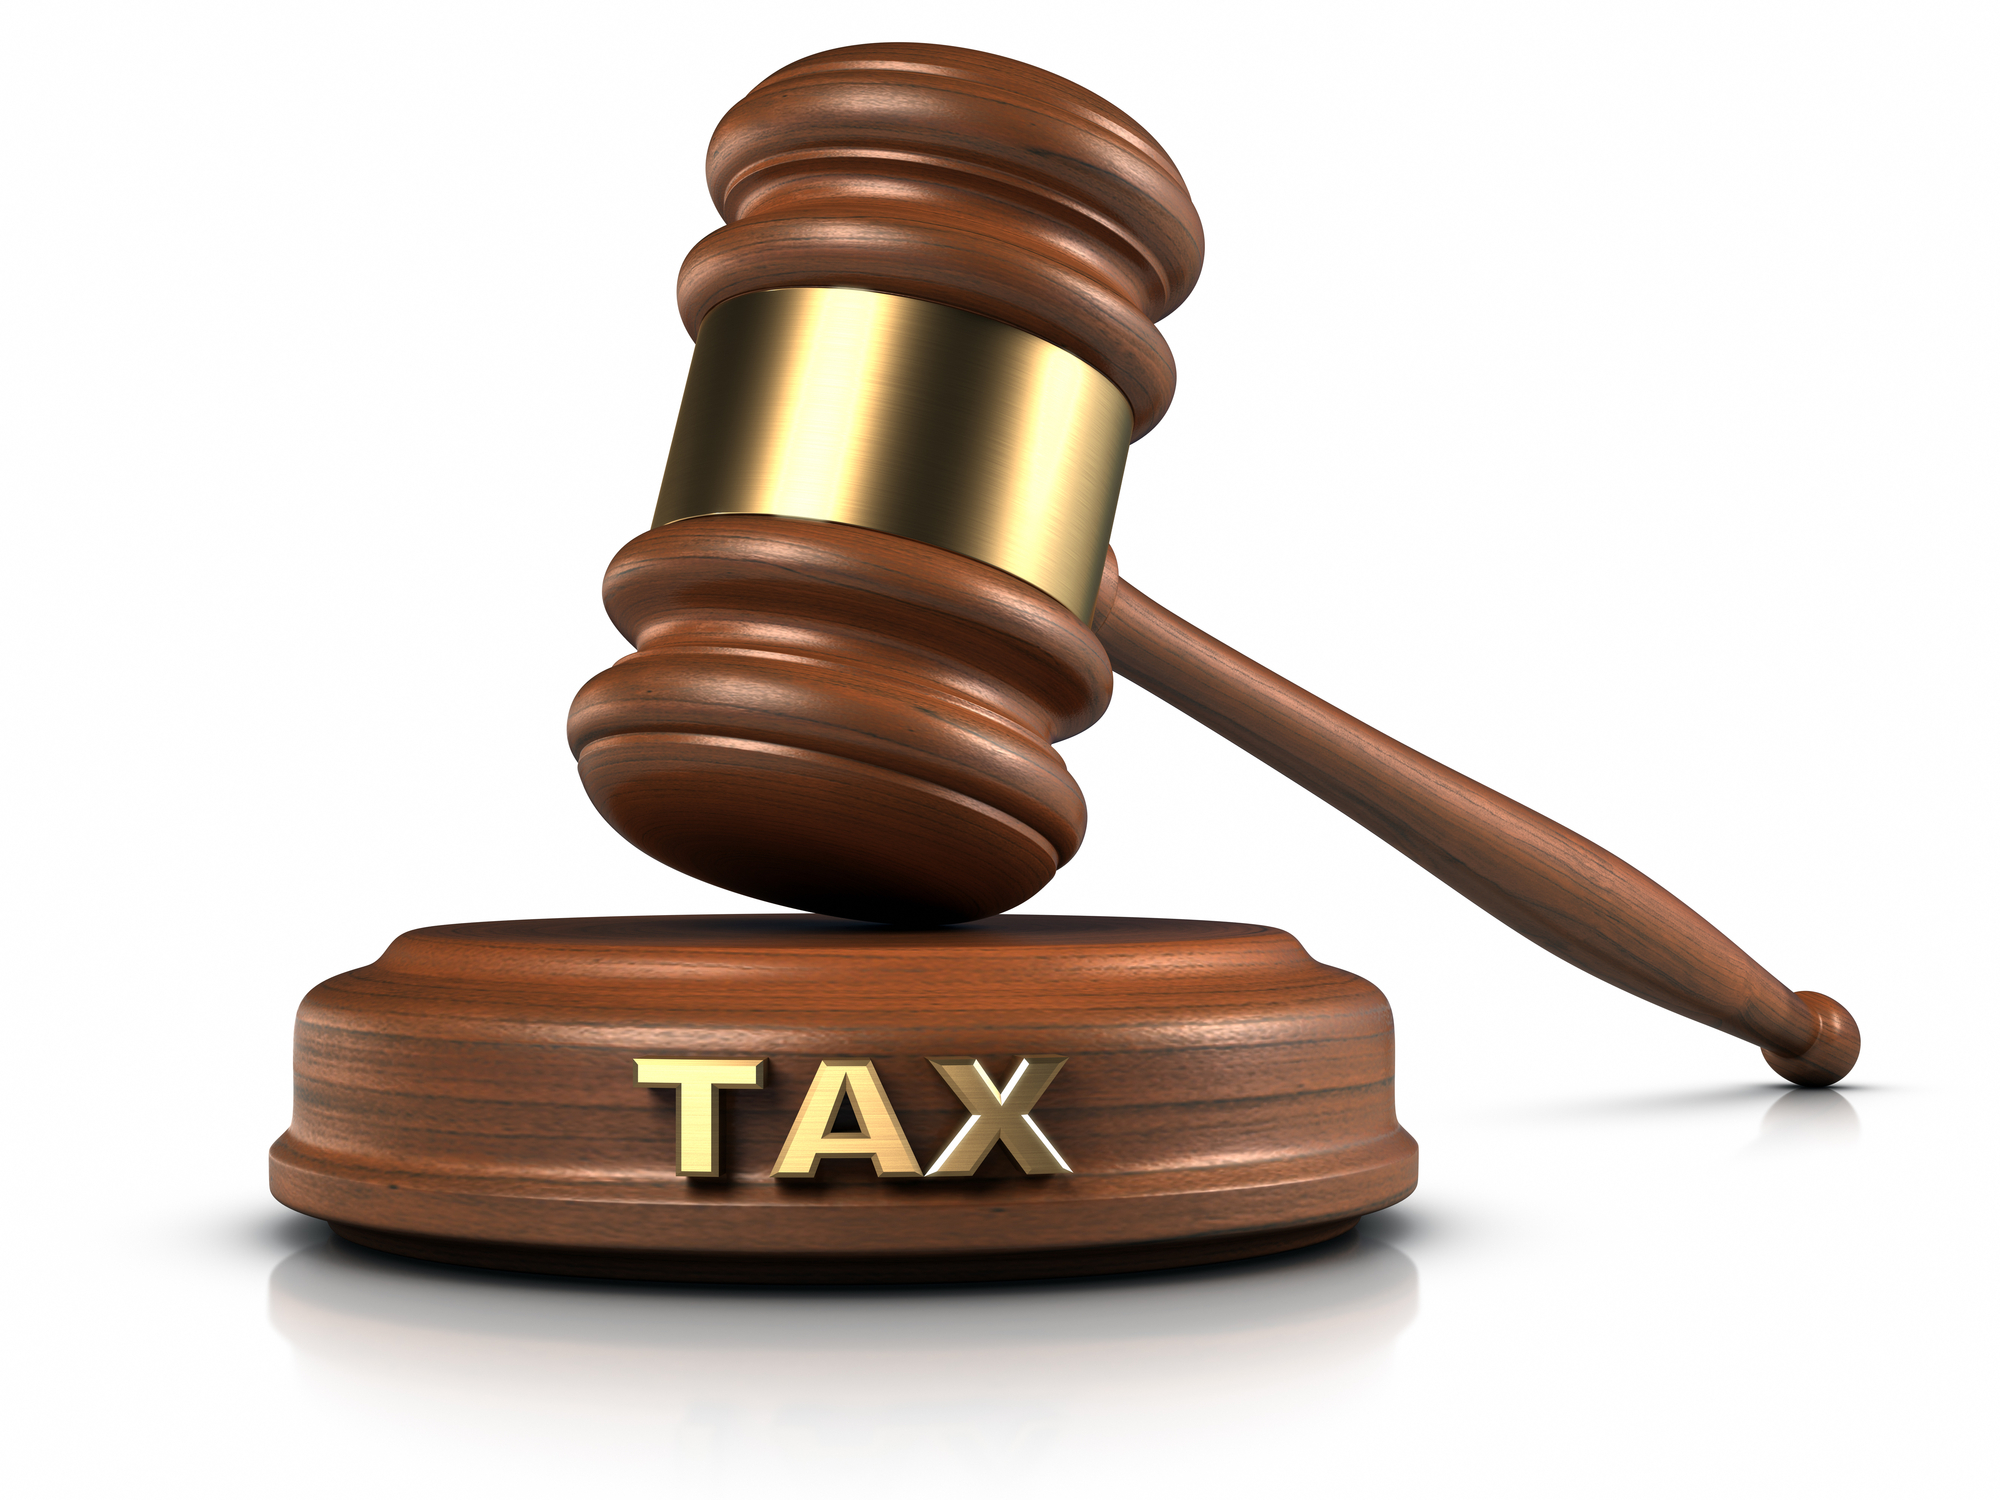 Regulations on tax administration applicable to taxpayers during suspension of operations or business